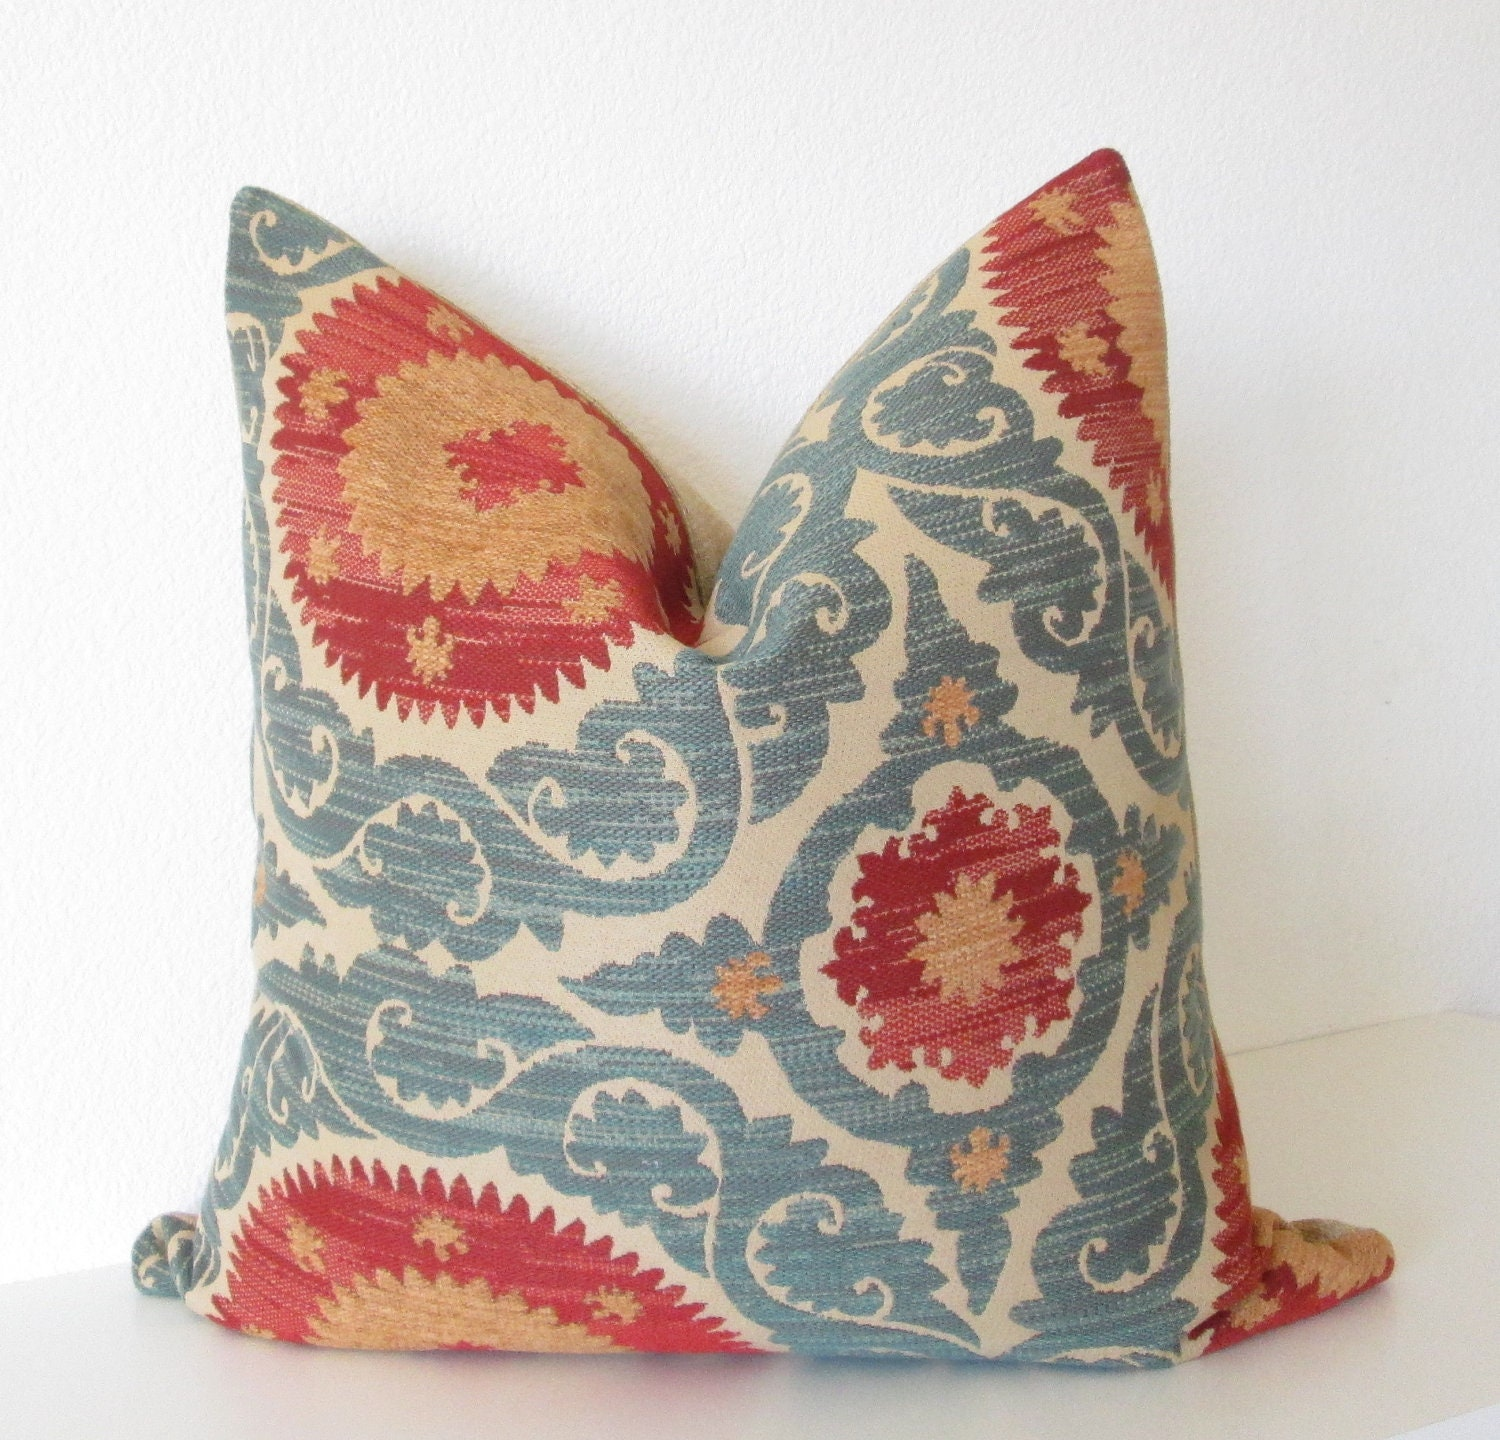 Decorative Pillows For Couch Etsy : Decorative pillow cover Throw pillow Suzani pillow 20x20